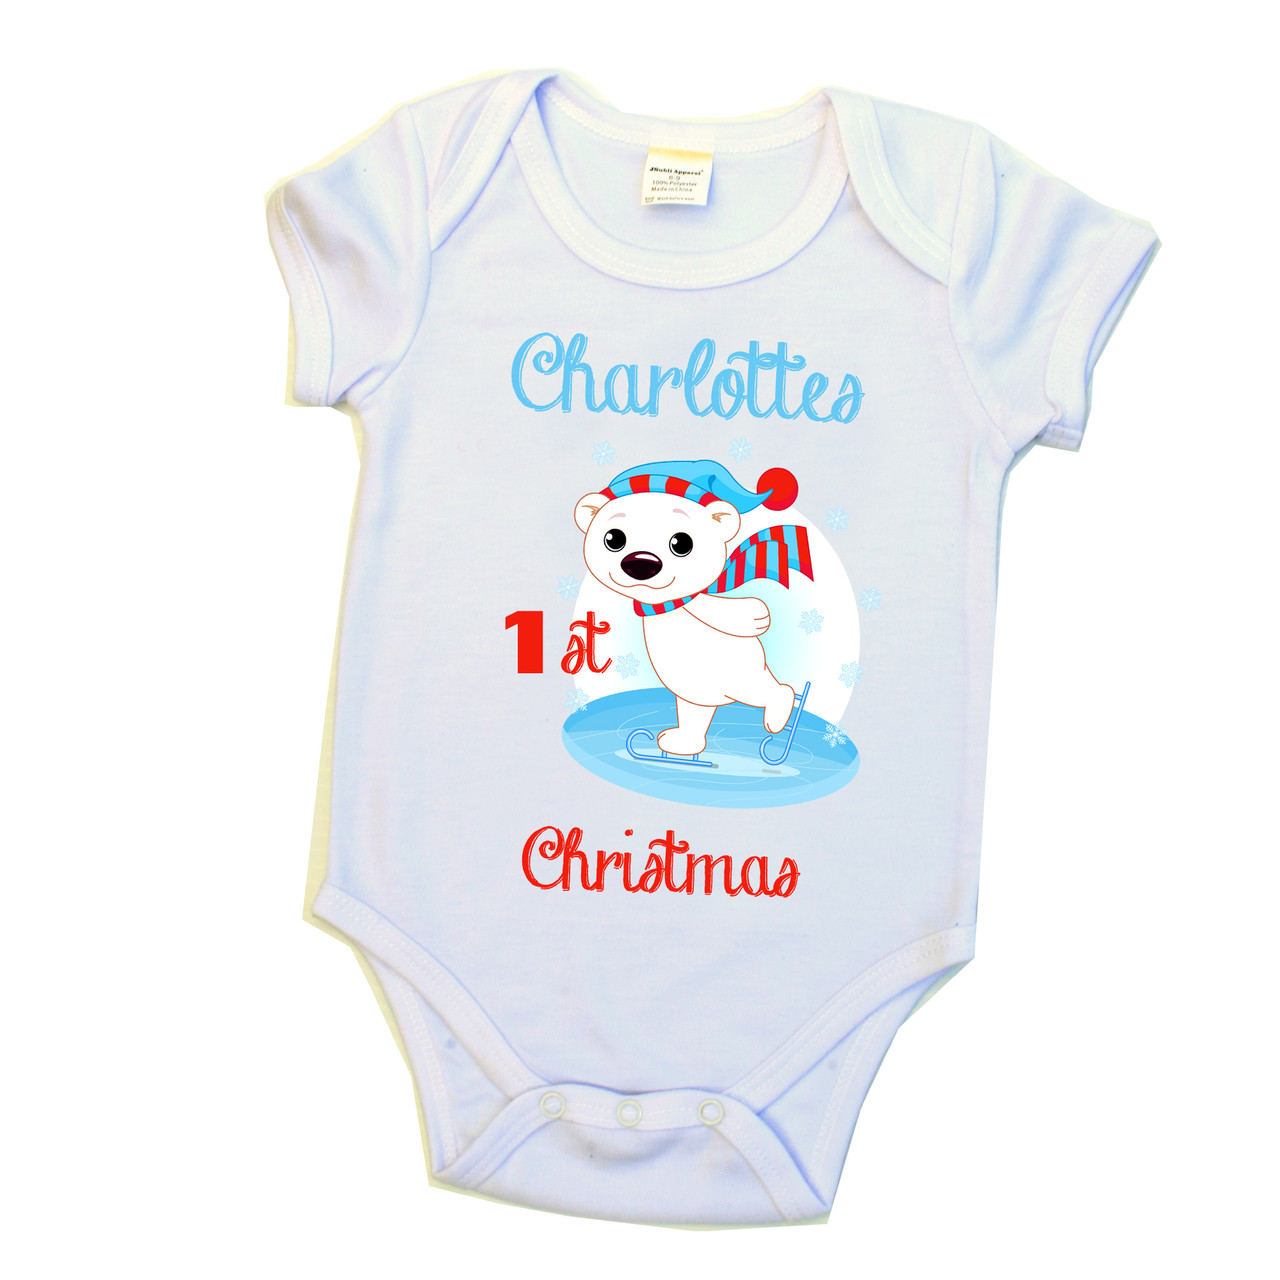 18e9bf1ec Customised Personalised Baby Onesie Outfit